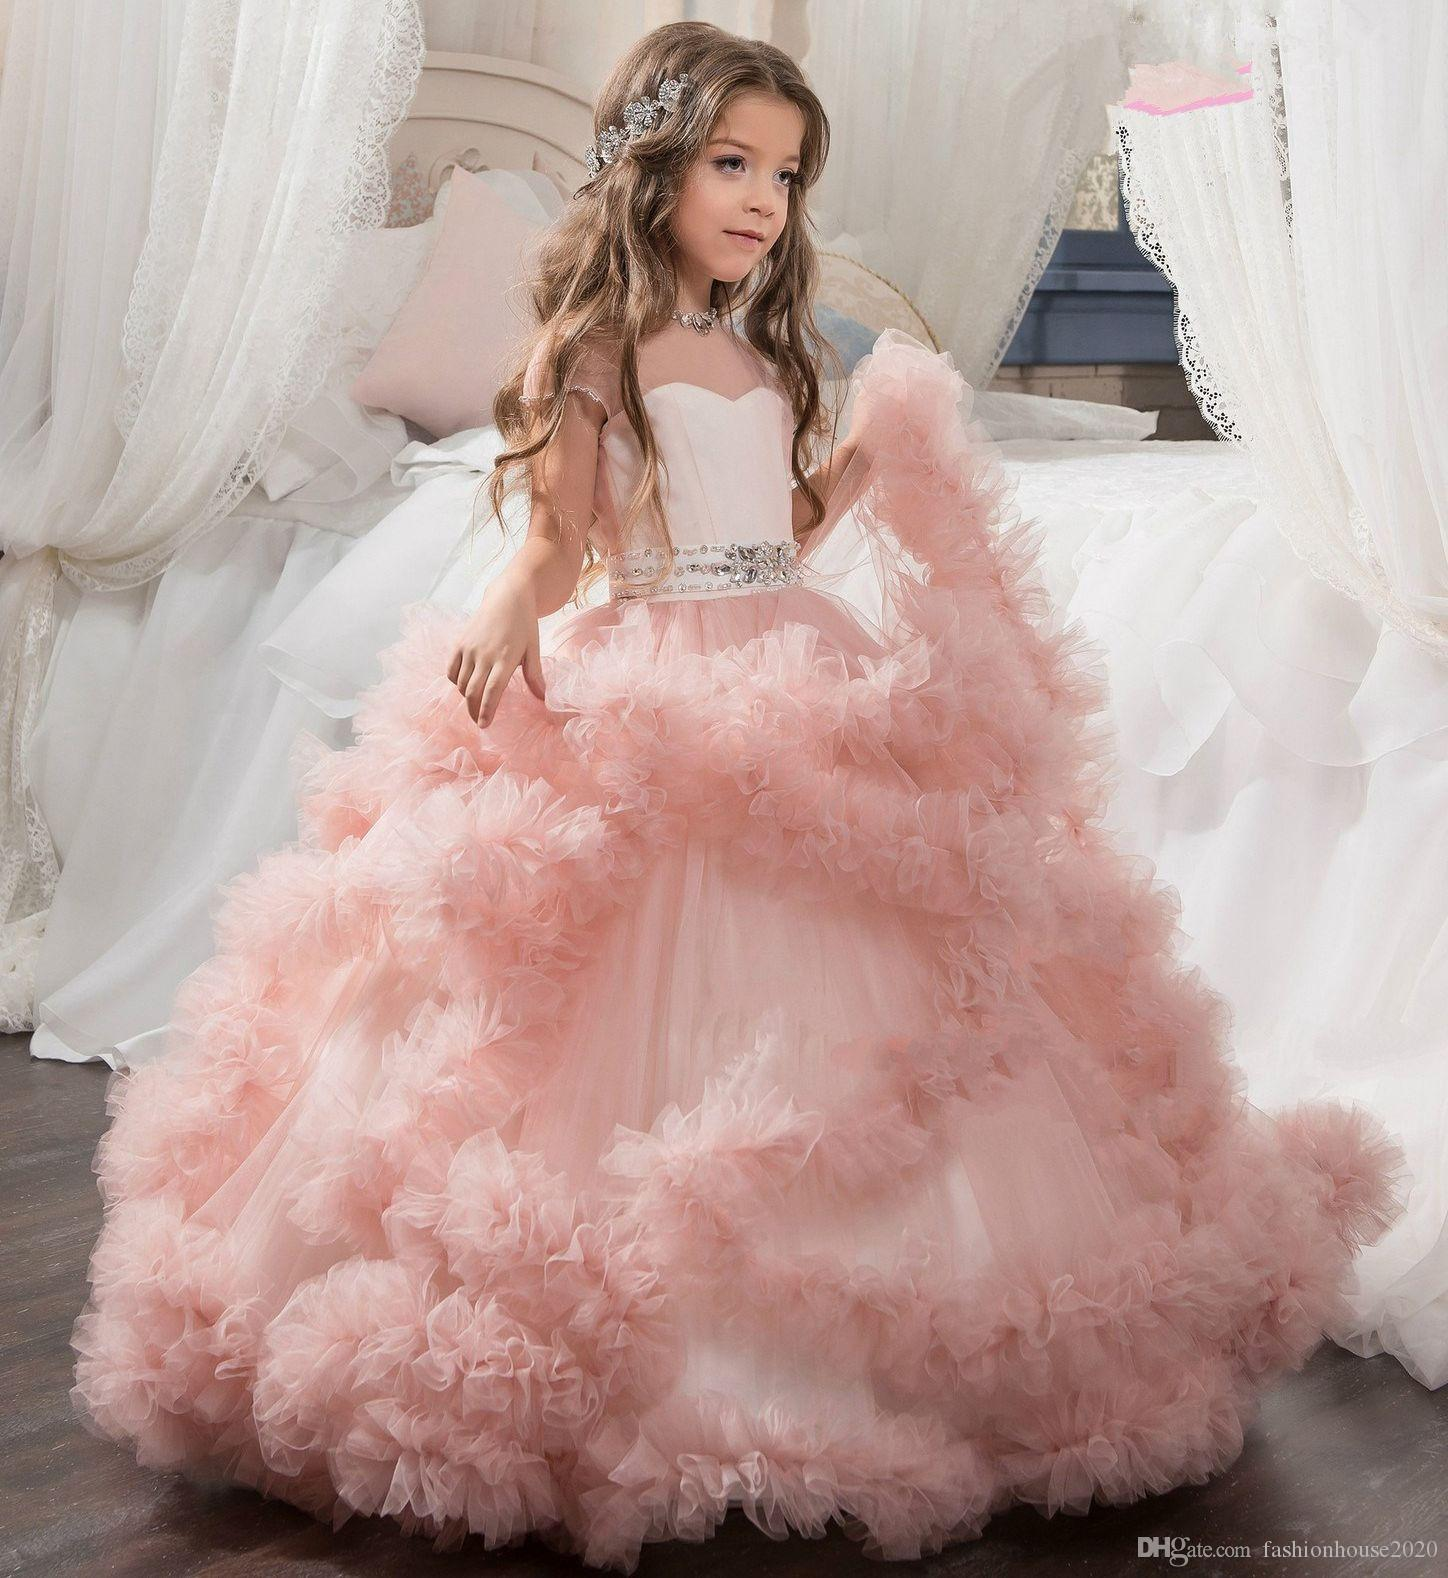 2018 pink tulle ball gown flower girl dresses sheer illusion tulle 2018 pink tulle ball gown flower girl dresses sheer illusion tulle neck short sleeve floor length first communion dress girls pageant dress ivory flower izmirmasajfo